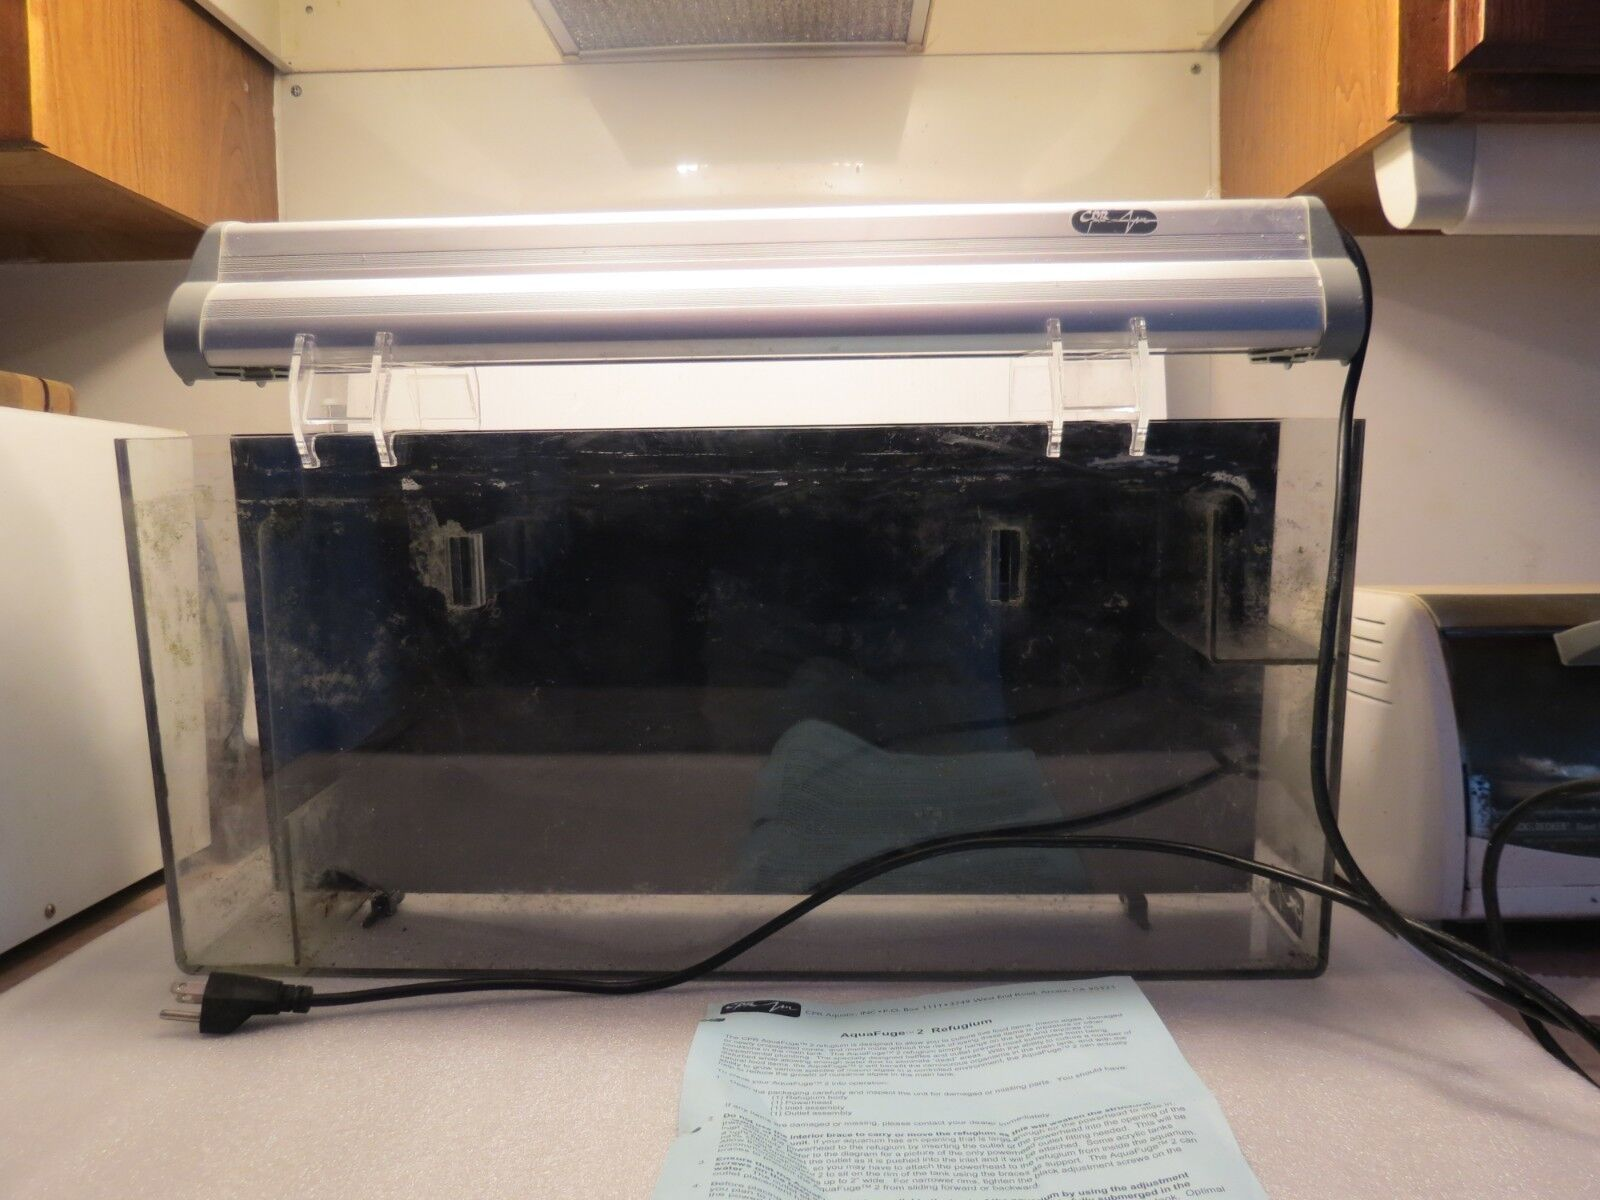 CPR AquaFuge Large 25 HangOn Refugium With Light, Very Good Used Condition